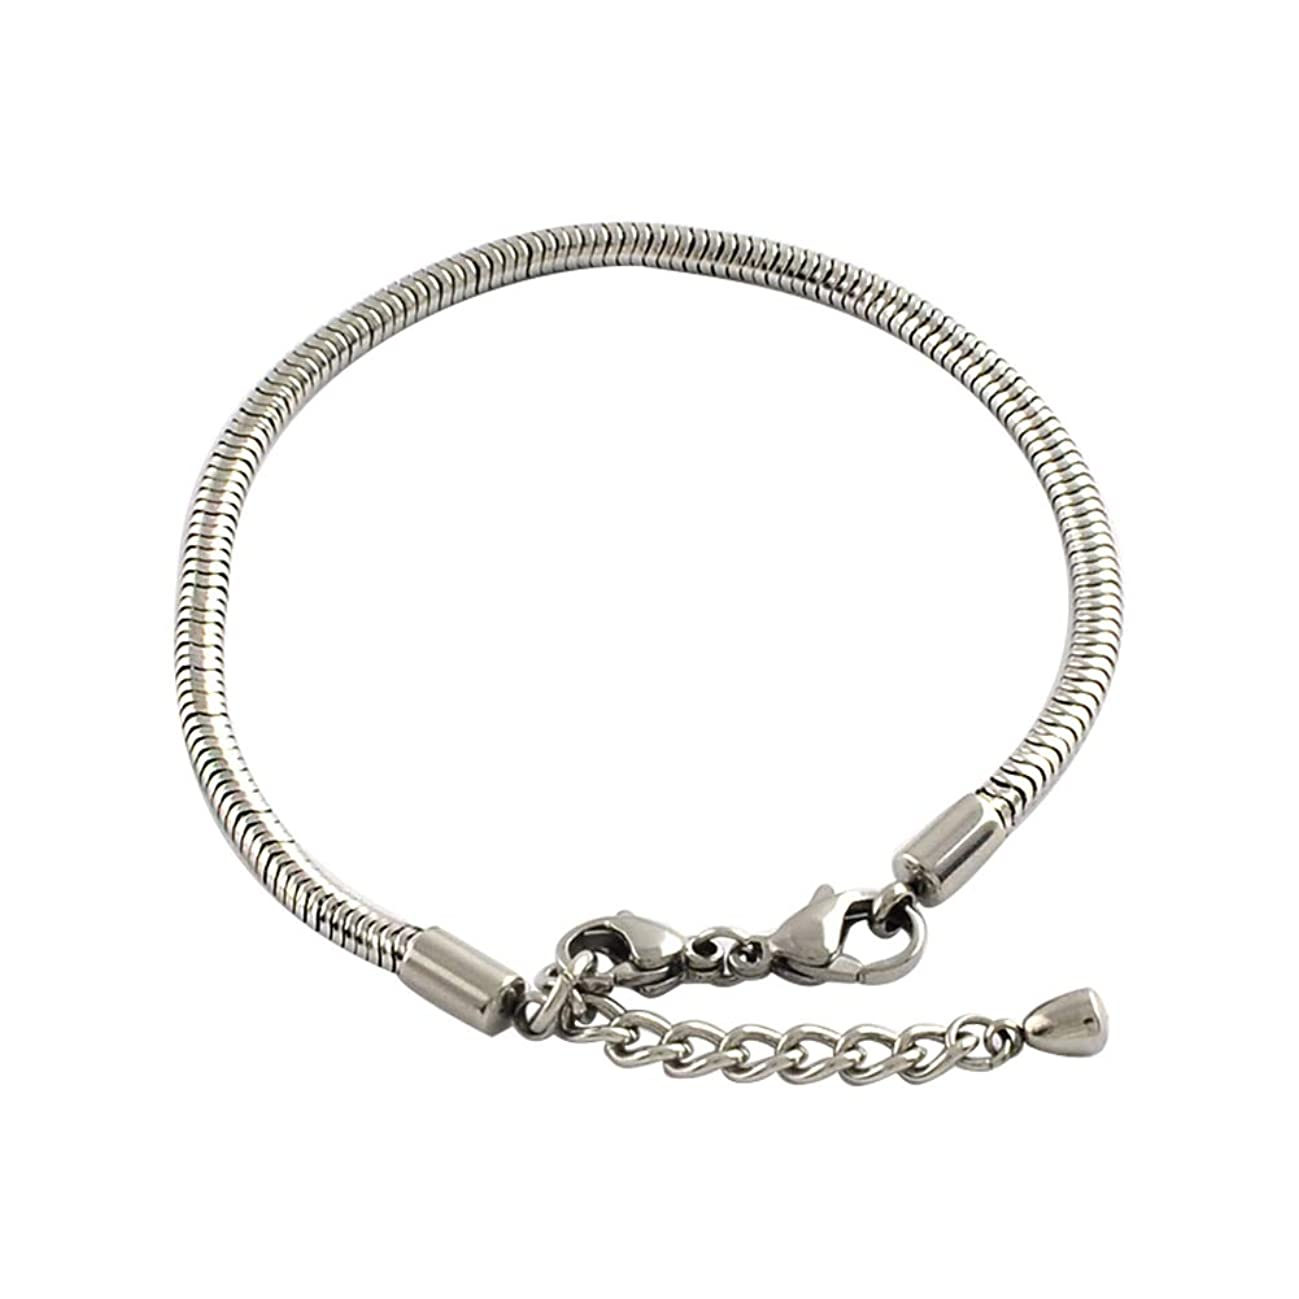 arricraft 10 Strands Stainless Steel European Style Snake Chains Extender Bracelets with Clasps for Jewelry Making, 195x3mm